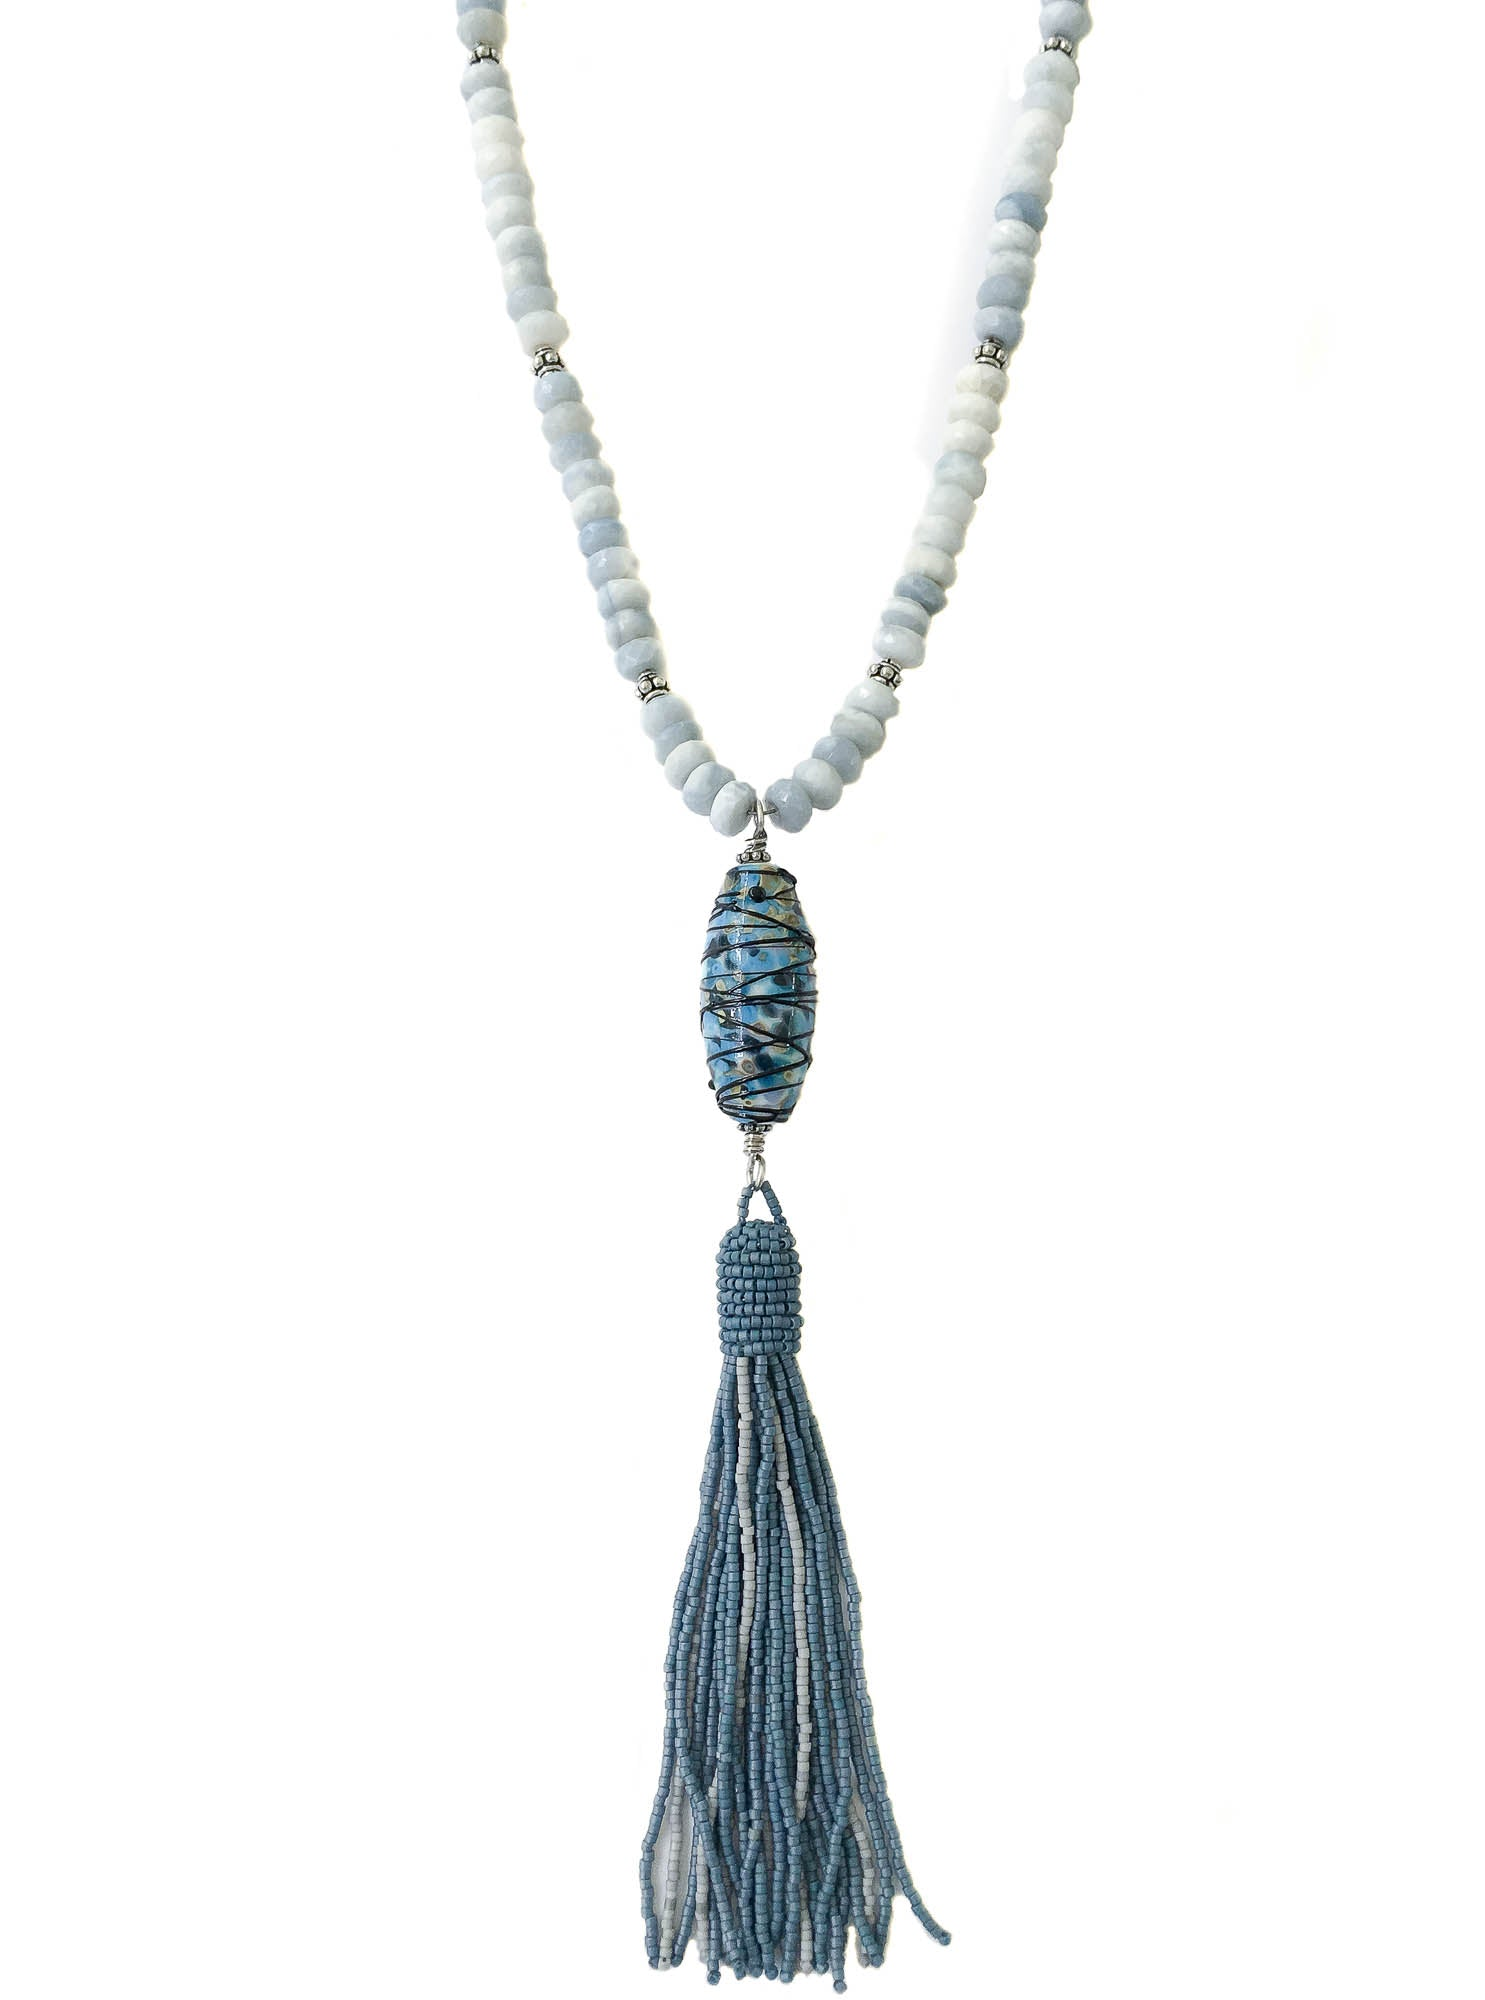 tassel tasselnecklace designs products backstory serenity necklace